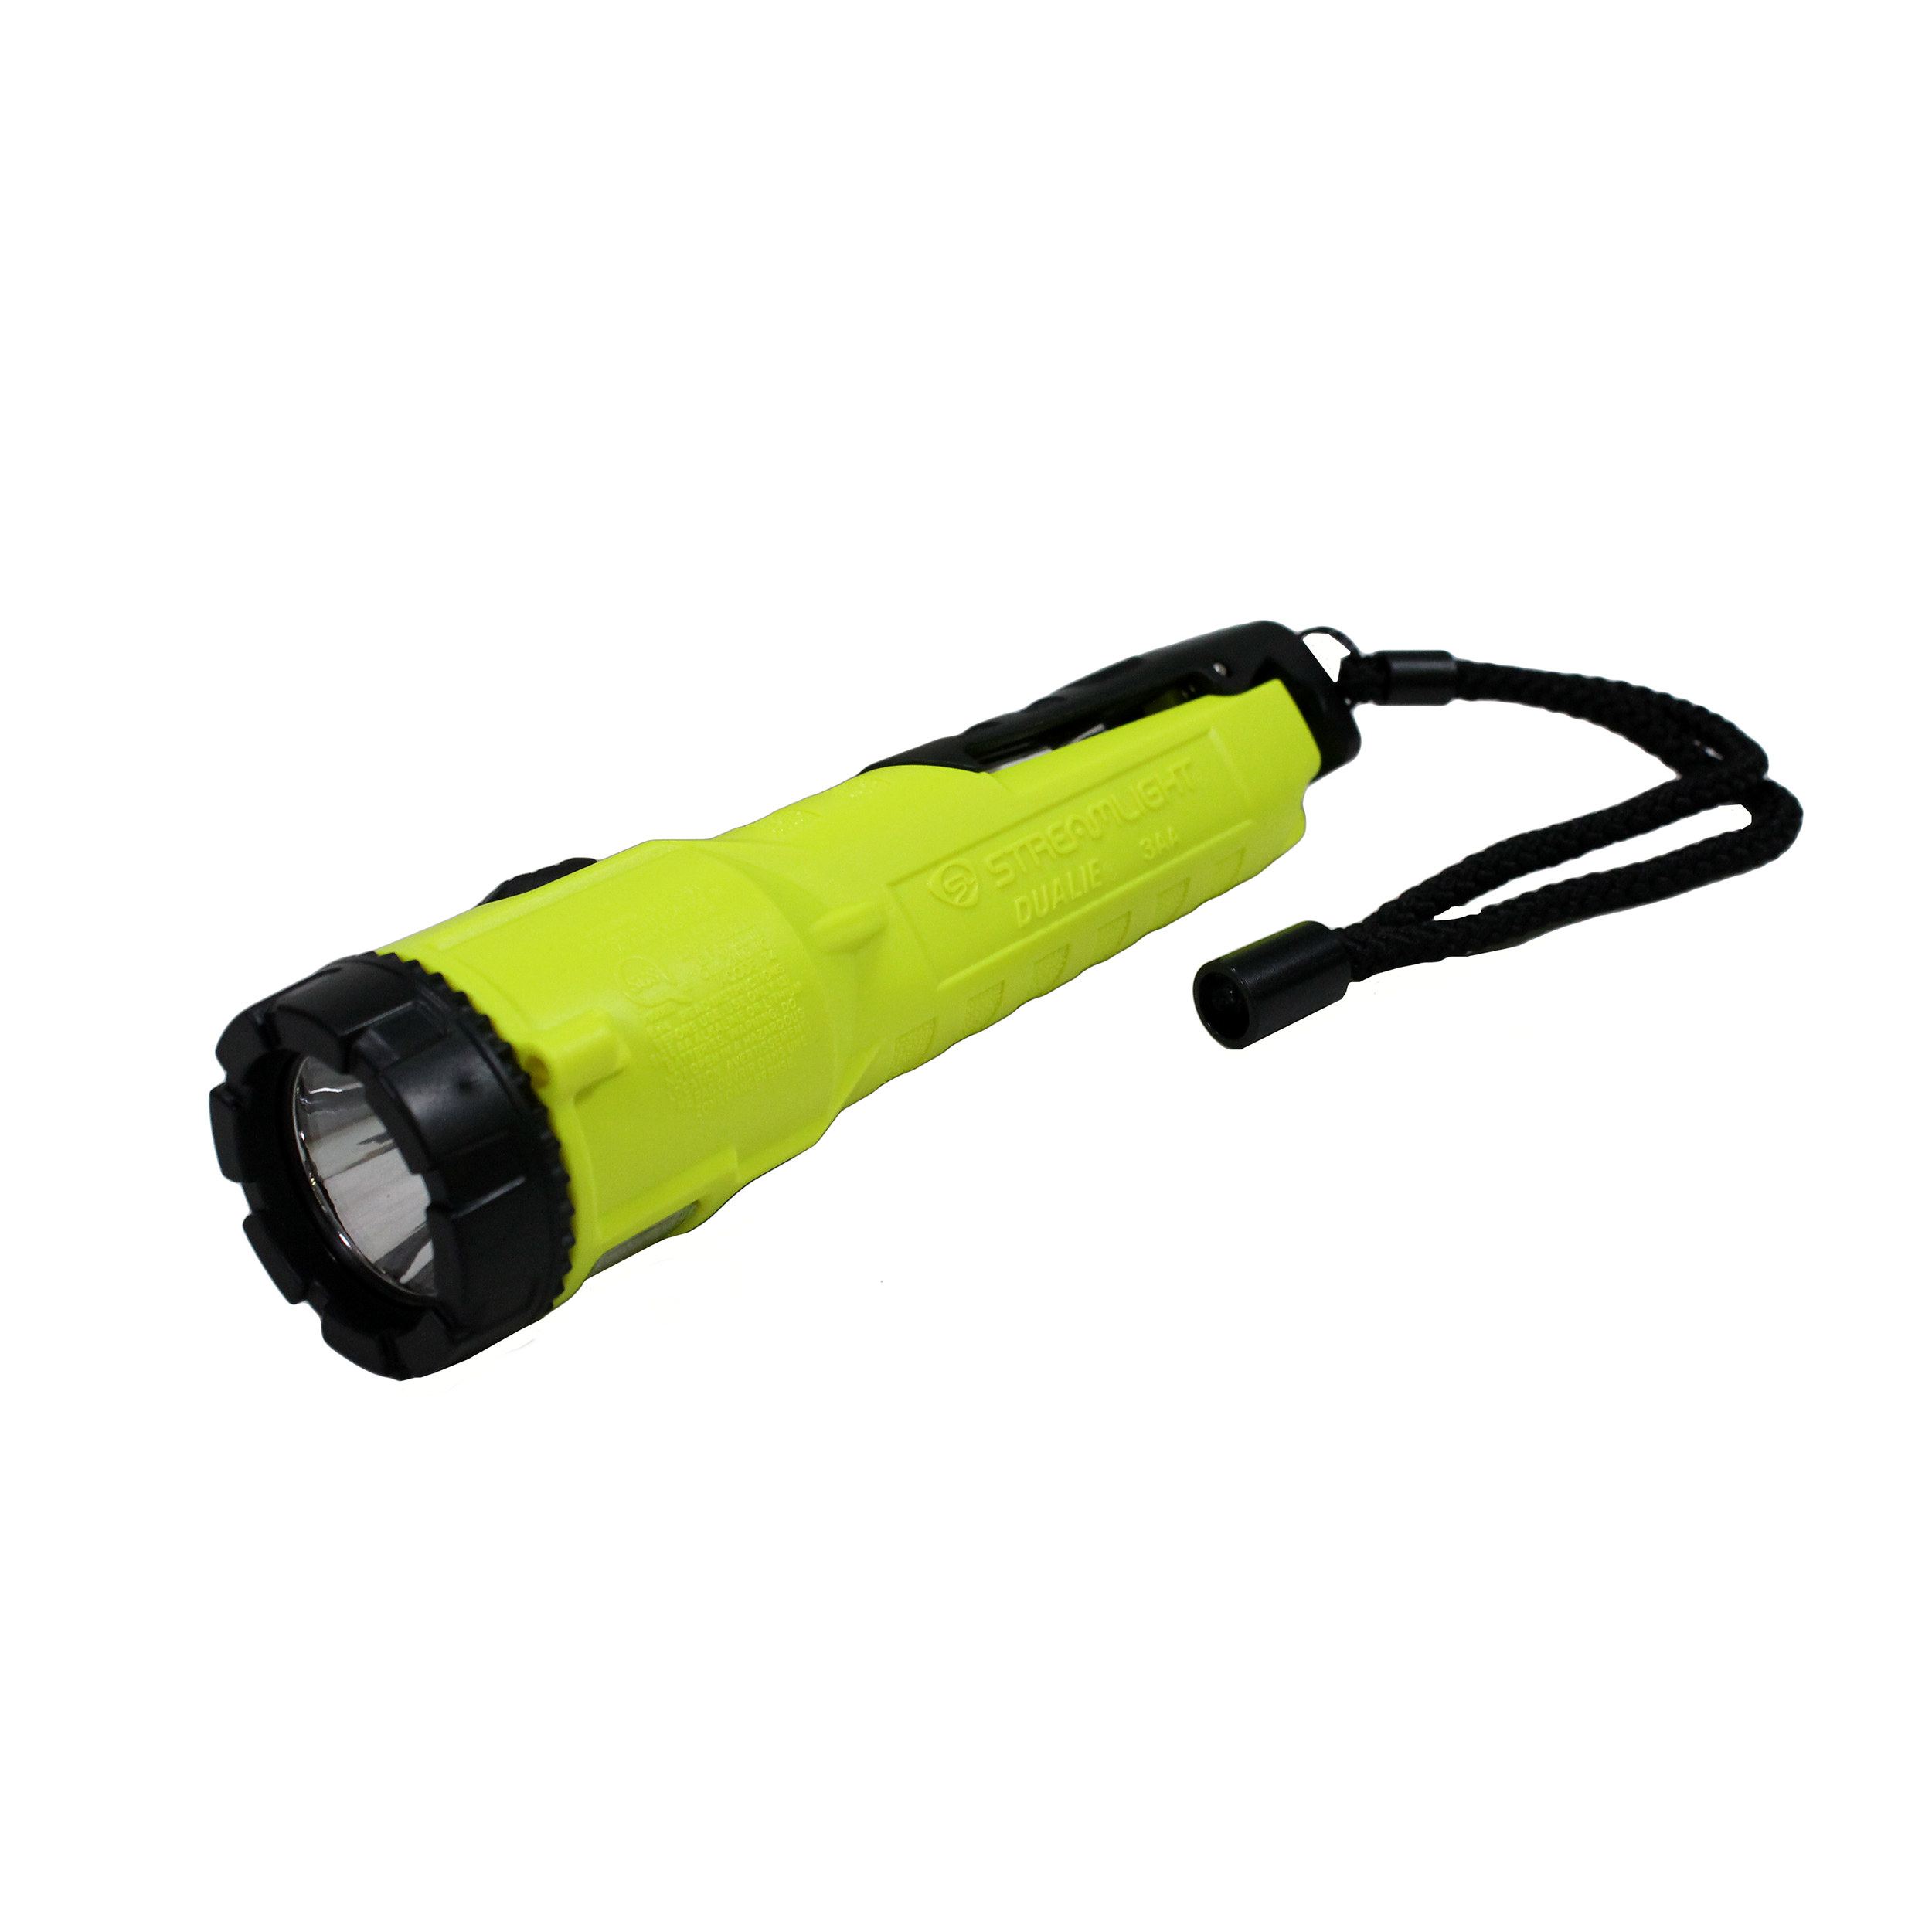 Streamlight 68782 Dualie 3AA with alkaline batteries, Magnetic clip and lanyard by Streamlight